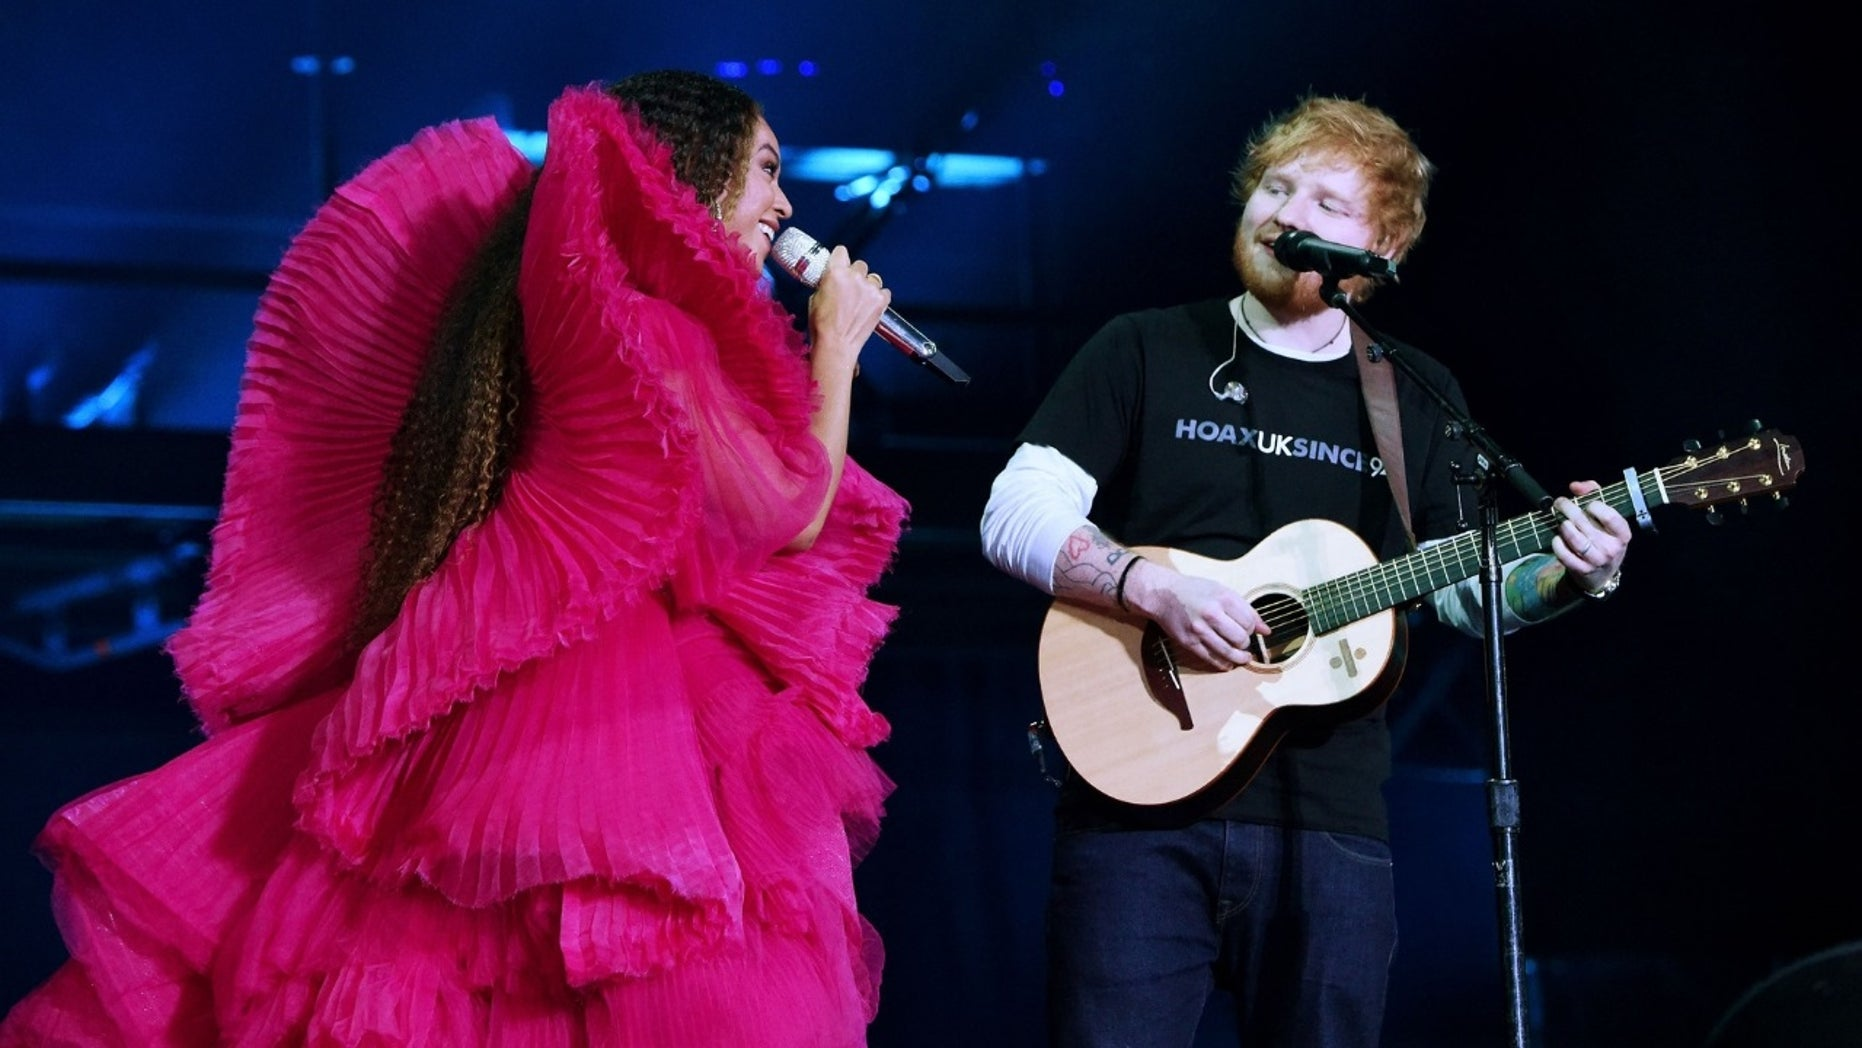 Ed Sheeran Responds To Backlash Over His Choice Of Clothing On Stage